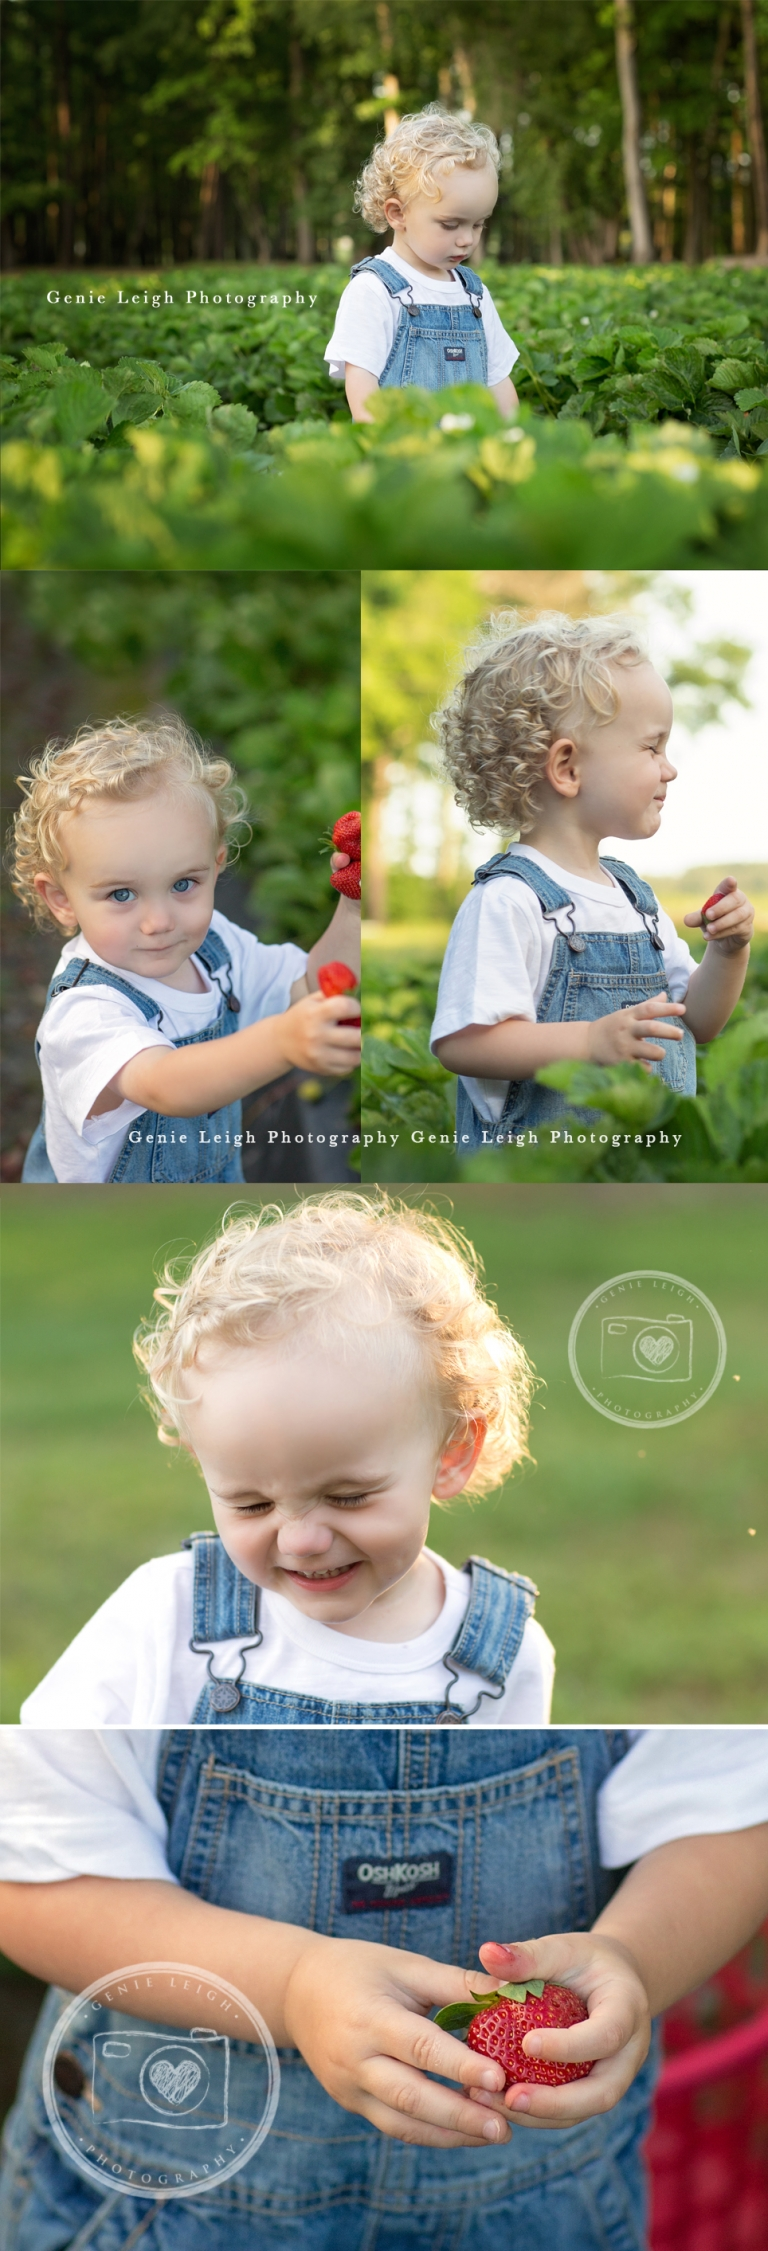 Genie Leigh Photography On The Farm Child Portrait Photographer Converse Sneakers Child Tractor Strawberry Field